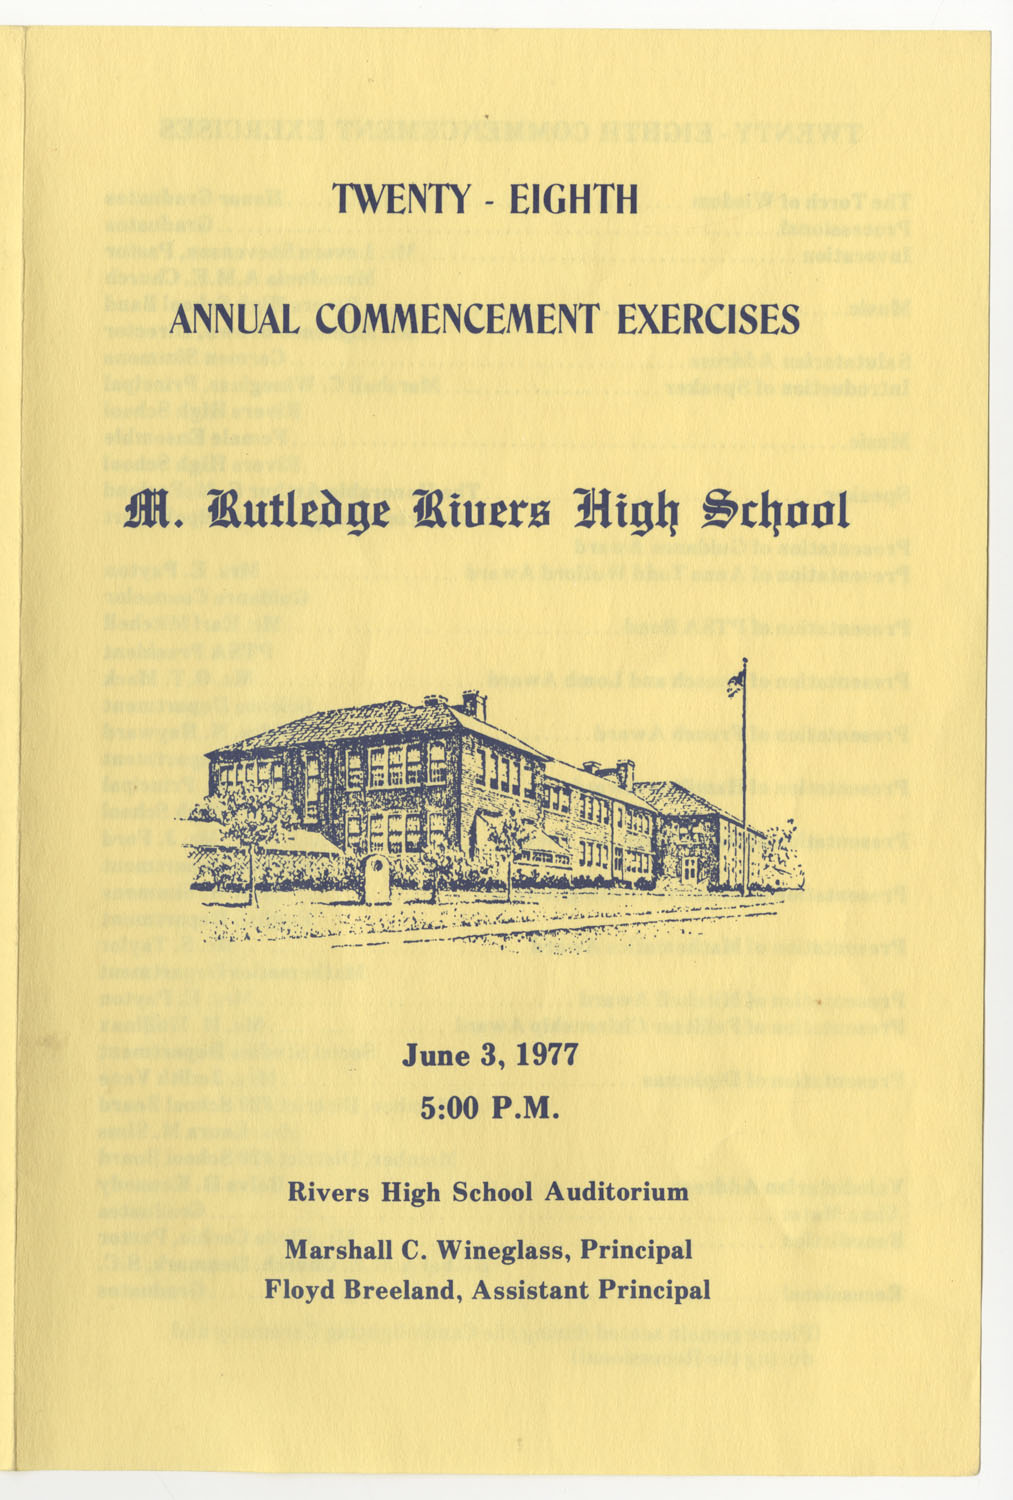 Twenty-Eighth Annual Commencement Exercises for Rivers High School